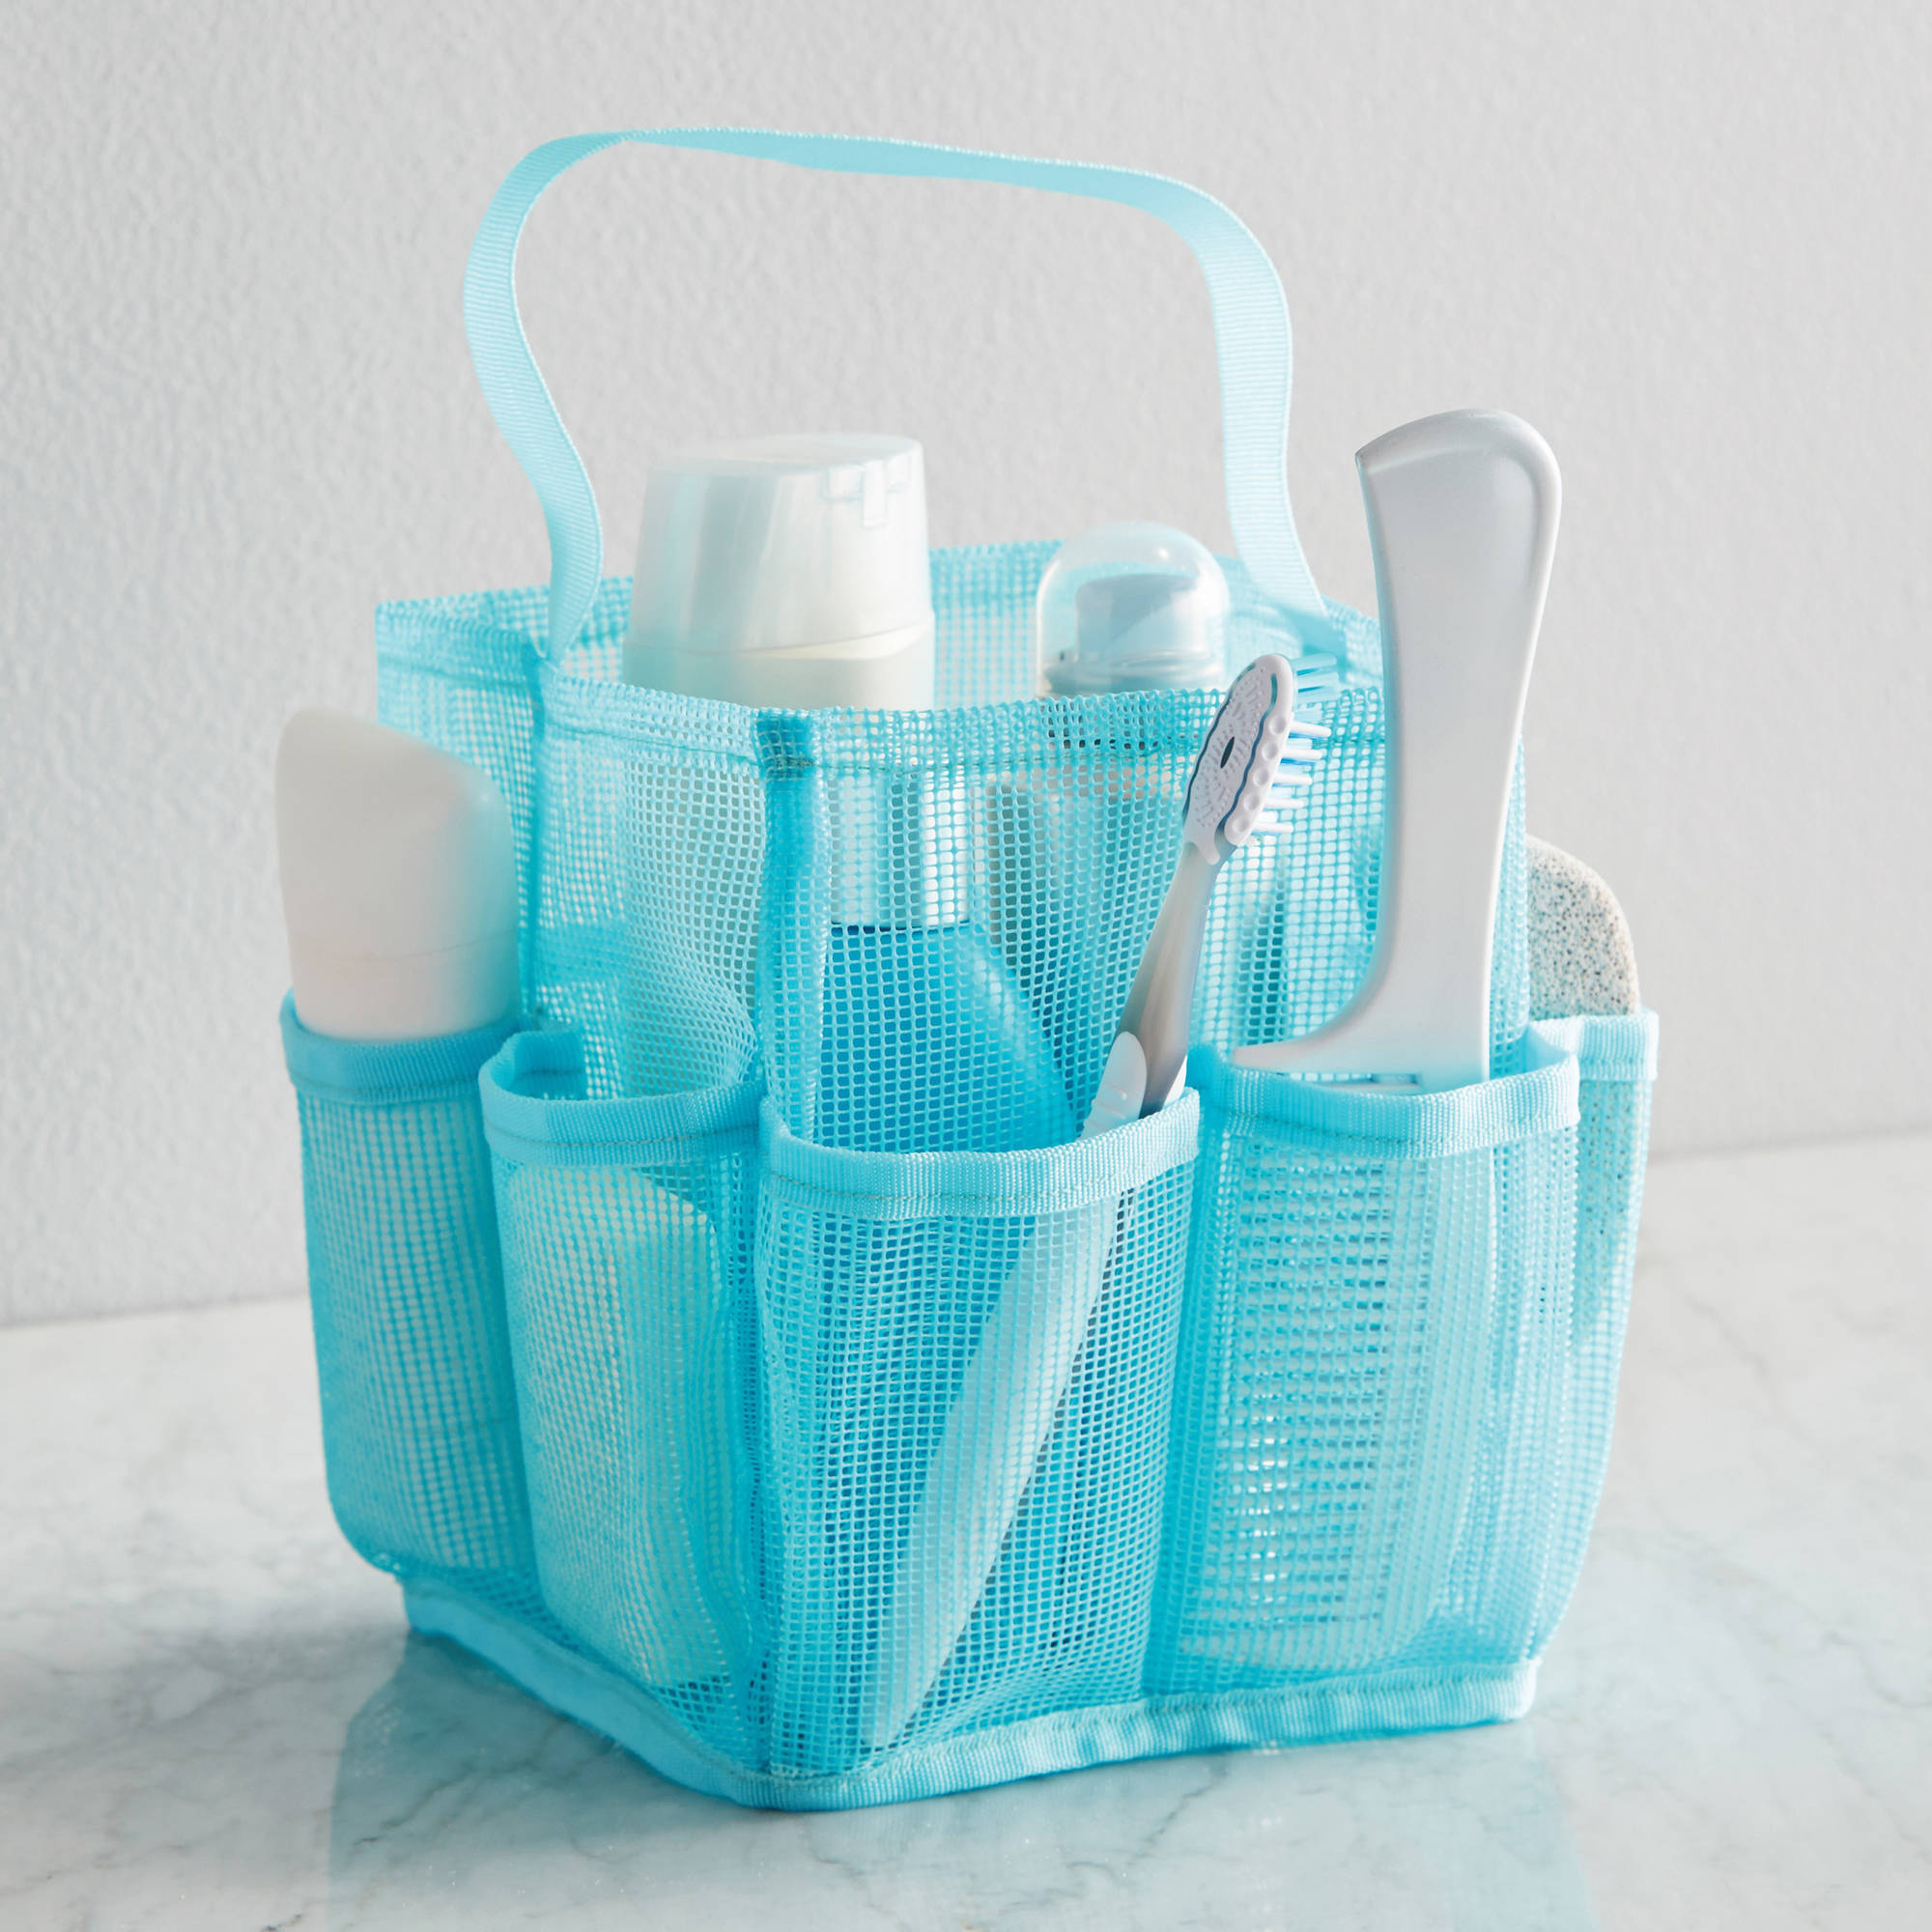 Mainstays Mesh Shower Tote, Teal